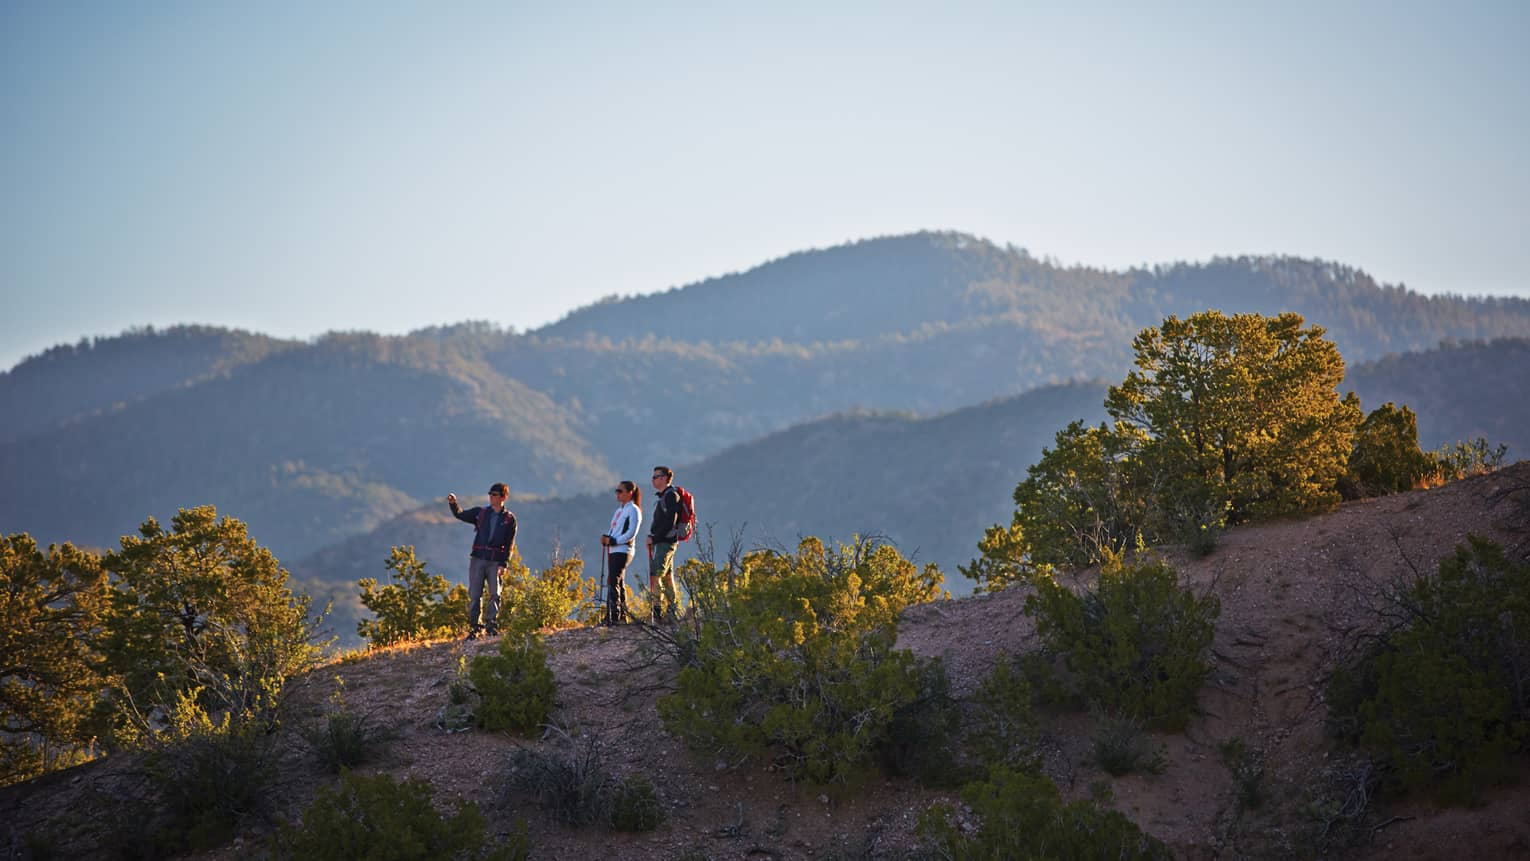 Three people hike on desert mountain hill